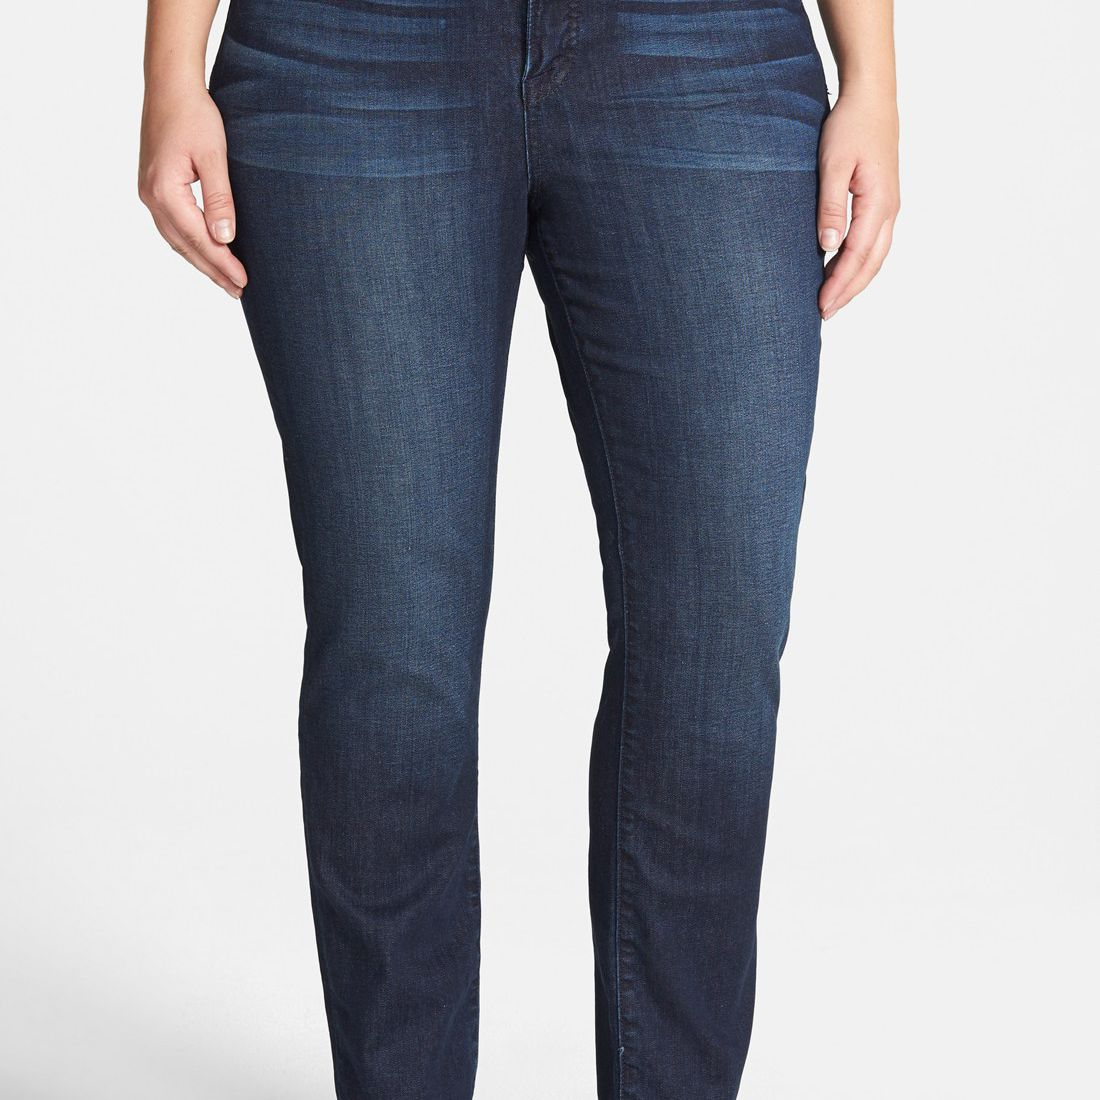 a0d64e08983 The Best Jeans for Your Body Type